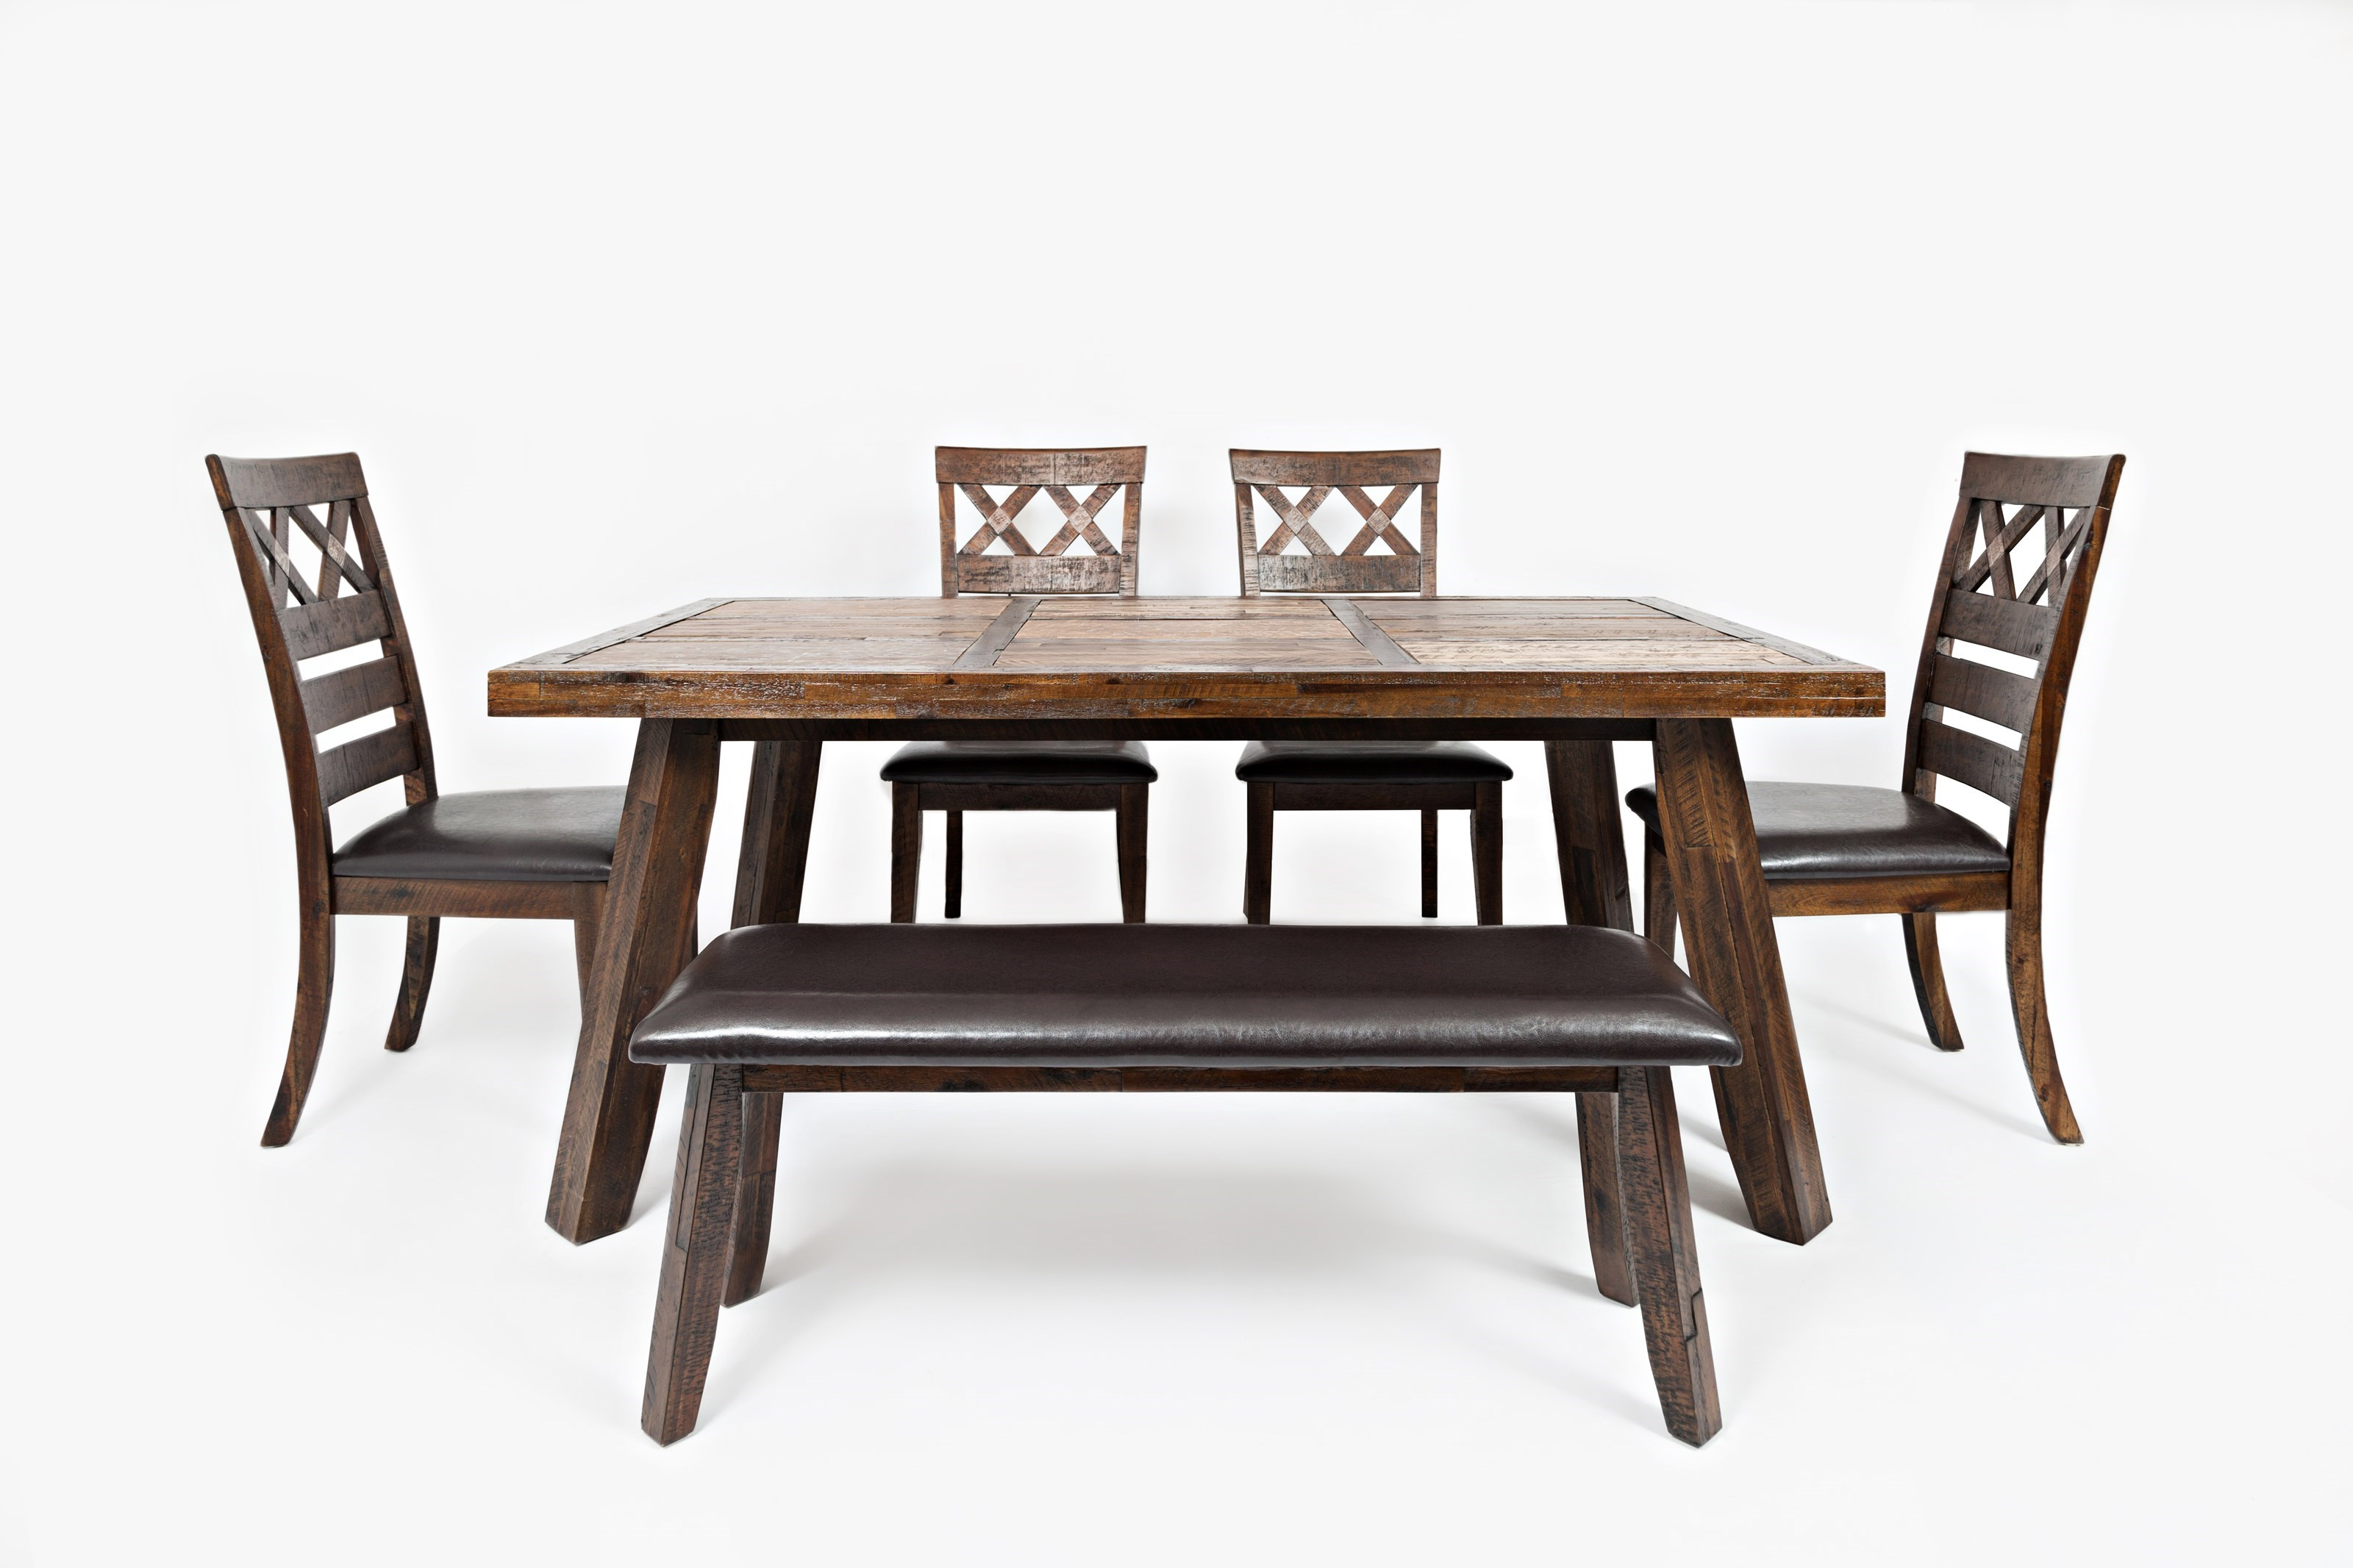 Jofran Painted Canyon Table with Four Chairs and Bench - Jofran